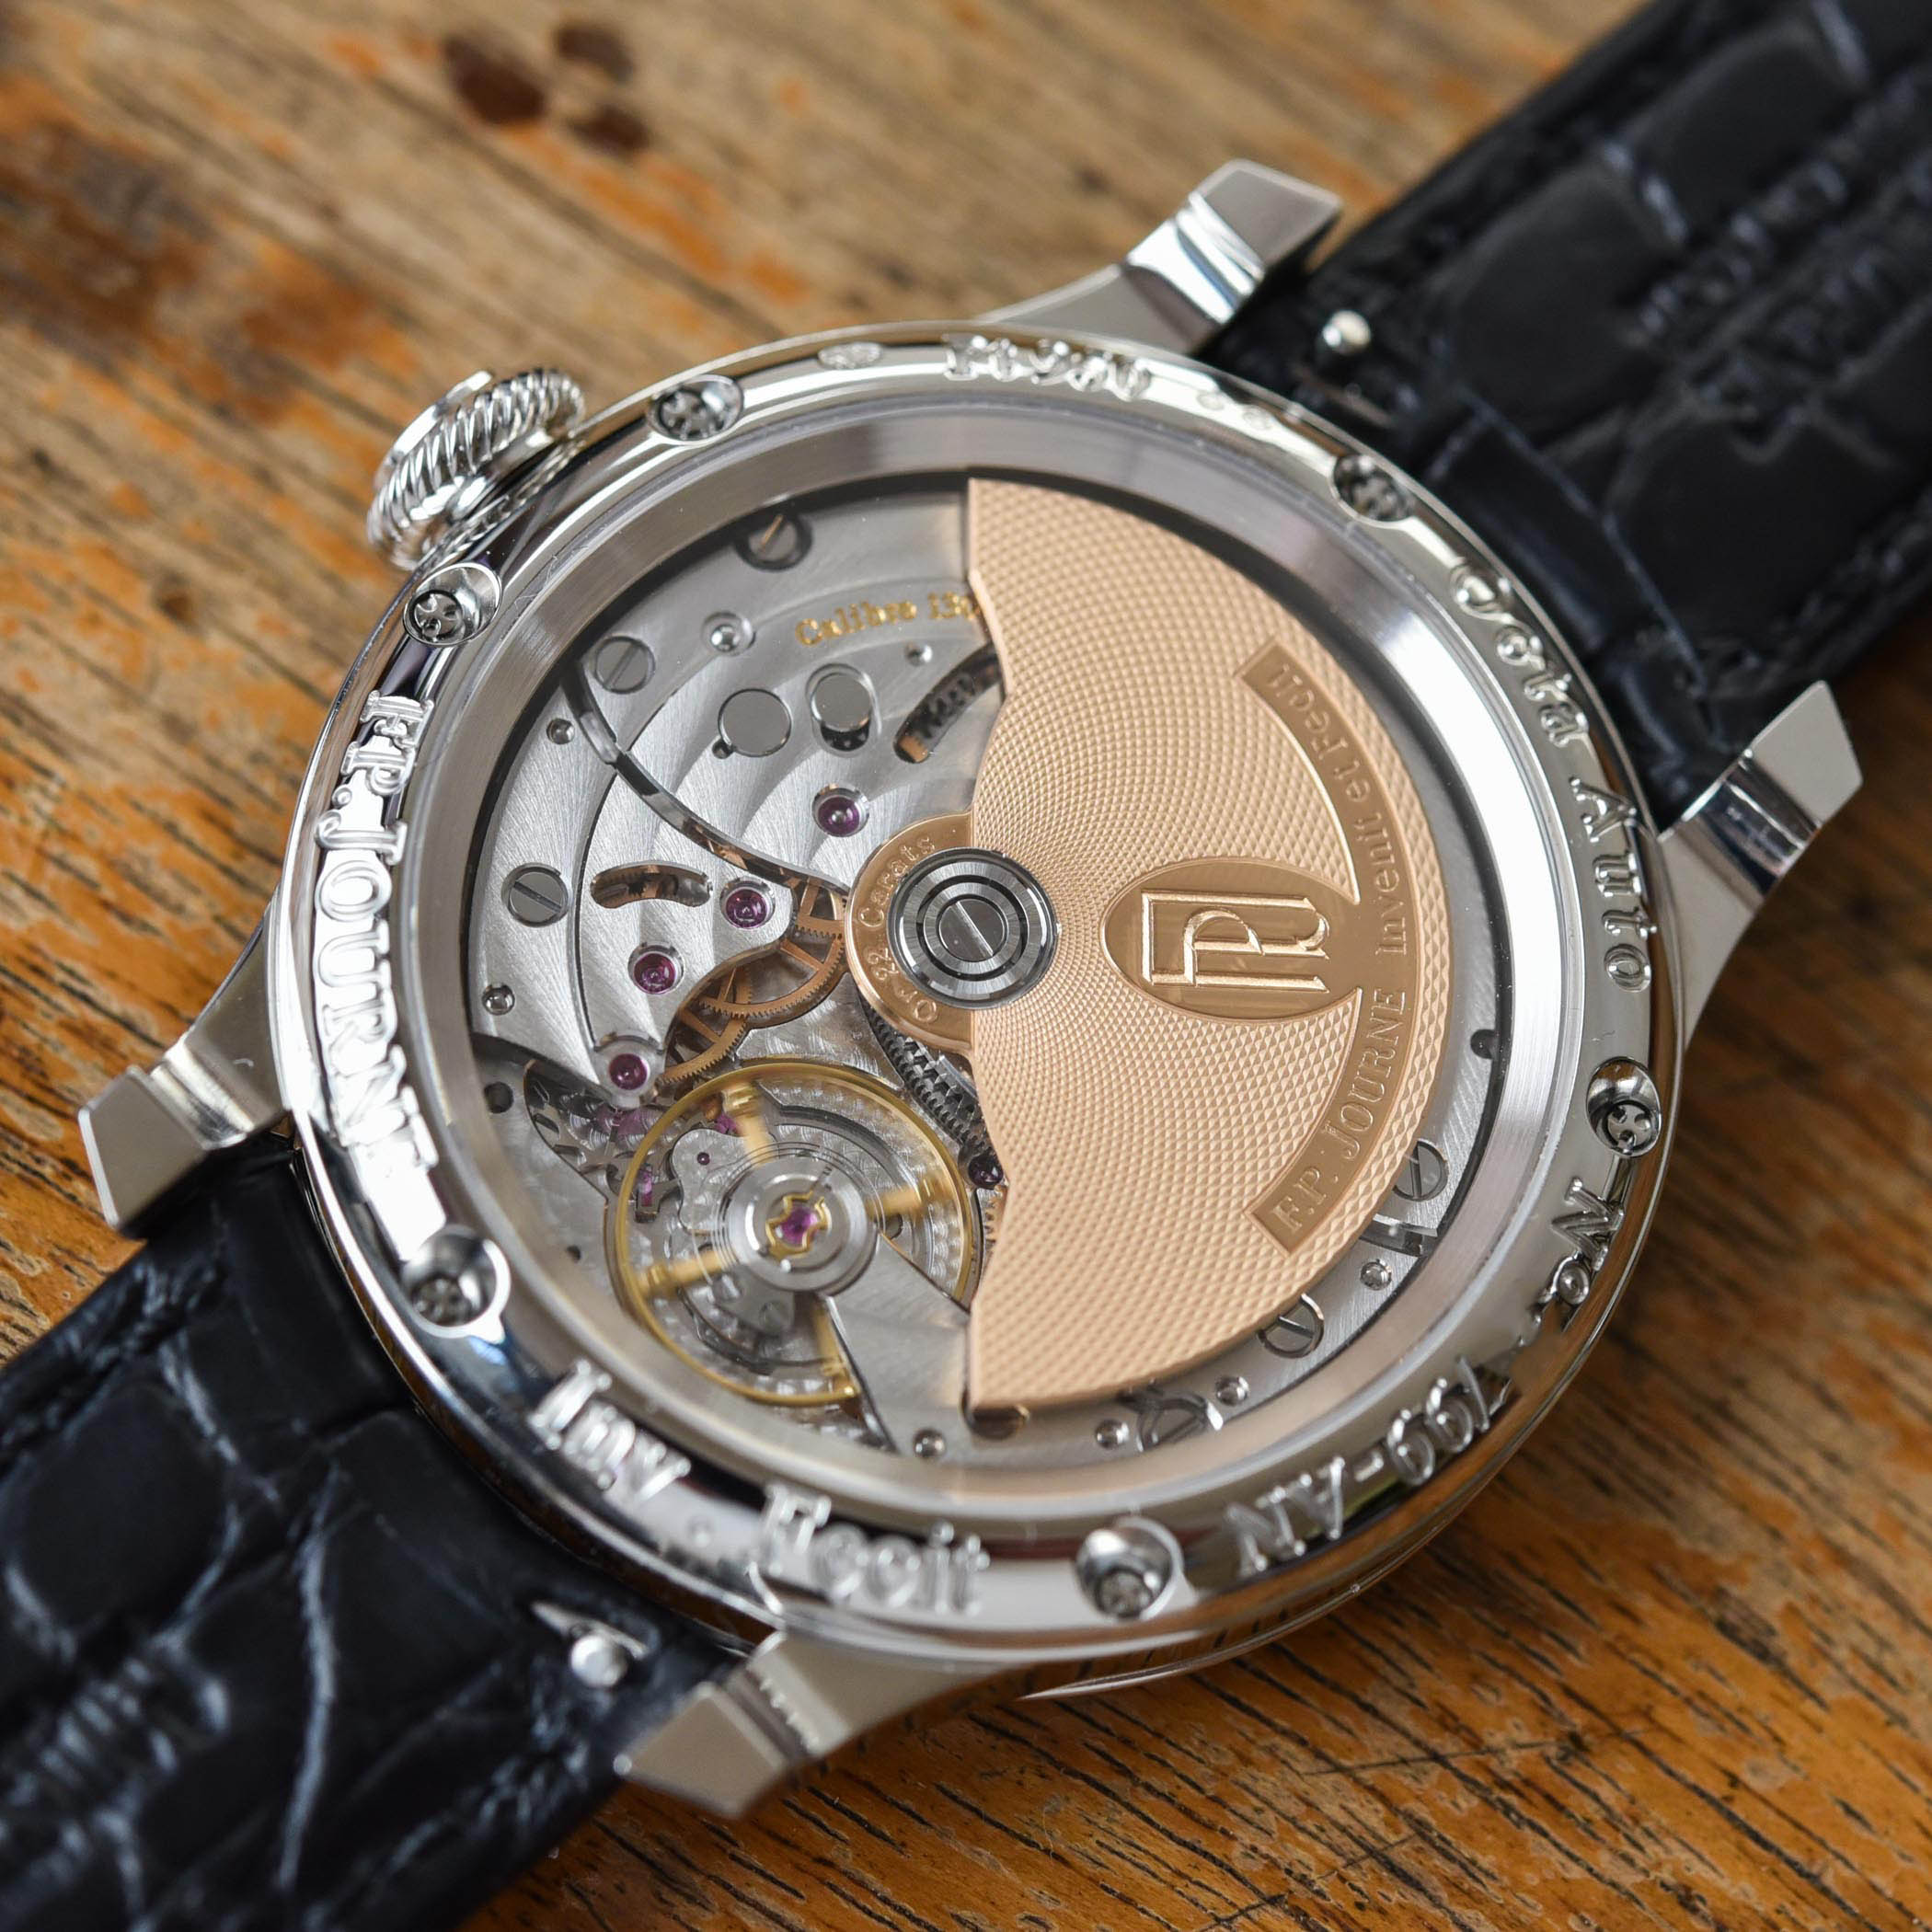 FP-Journe-Automatique-Limited-Edition-20th-anniversary-Octa-review-41